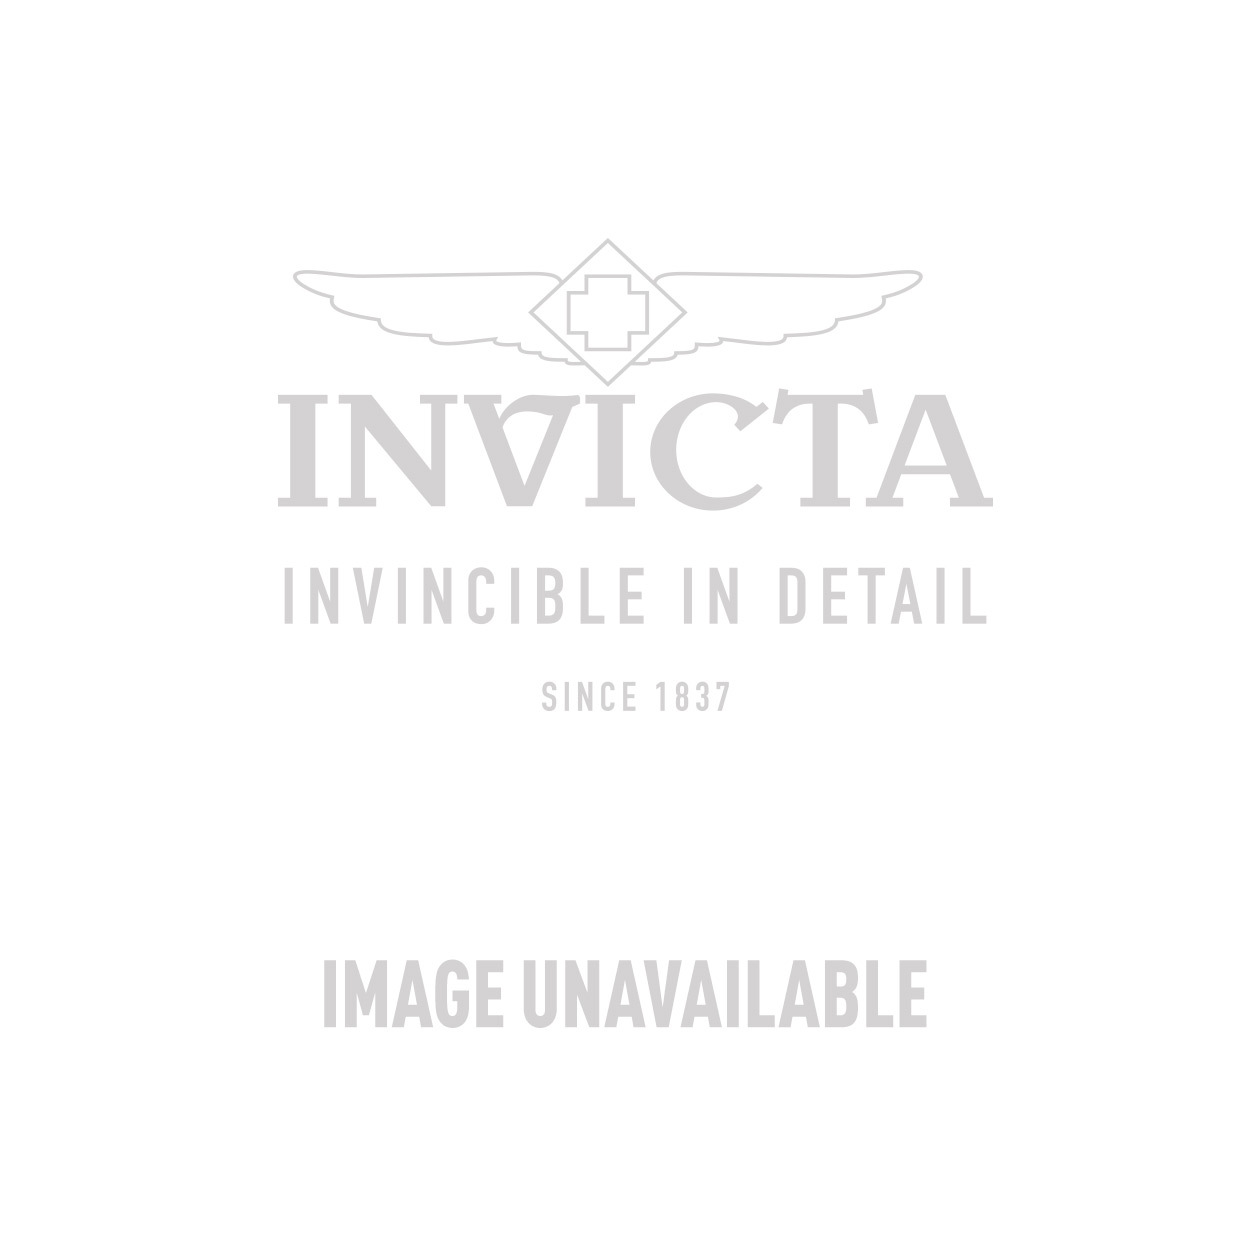 Invicta Bolt Swiss Made Quartz Watch - Stainless Steel case Stainless Steel band - Model 0820